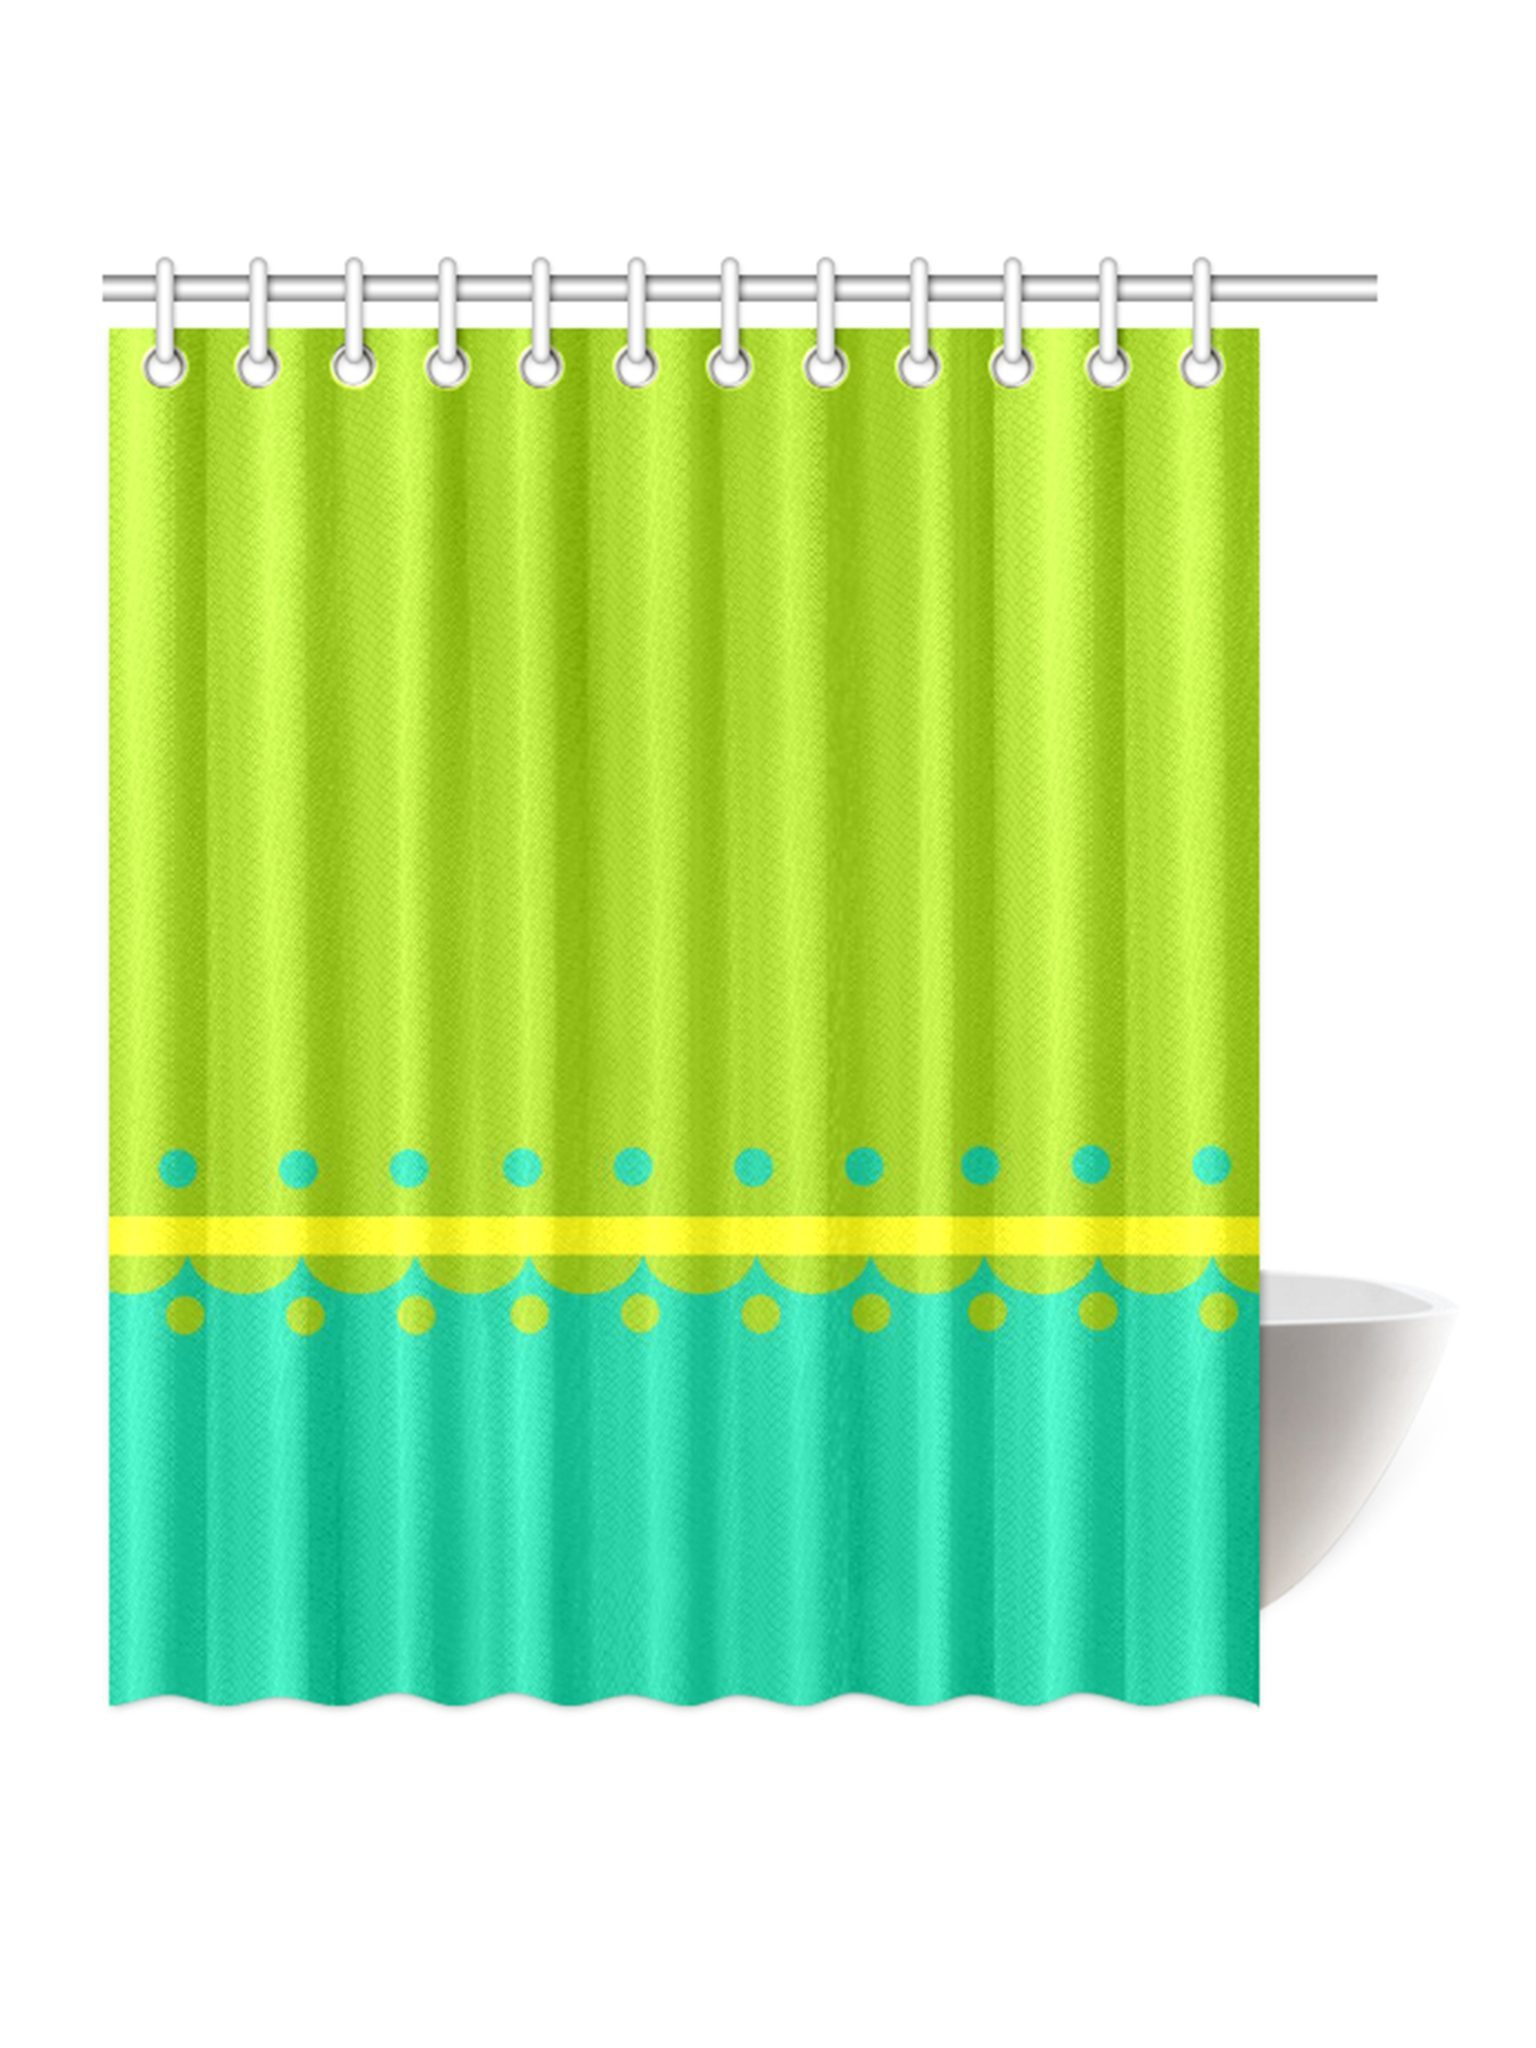 yellow and teal shower curtain. SHOWER CURTAINS yellow dots mod shower curtain  original design Kayci Garline